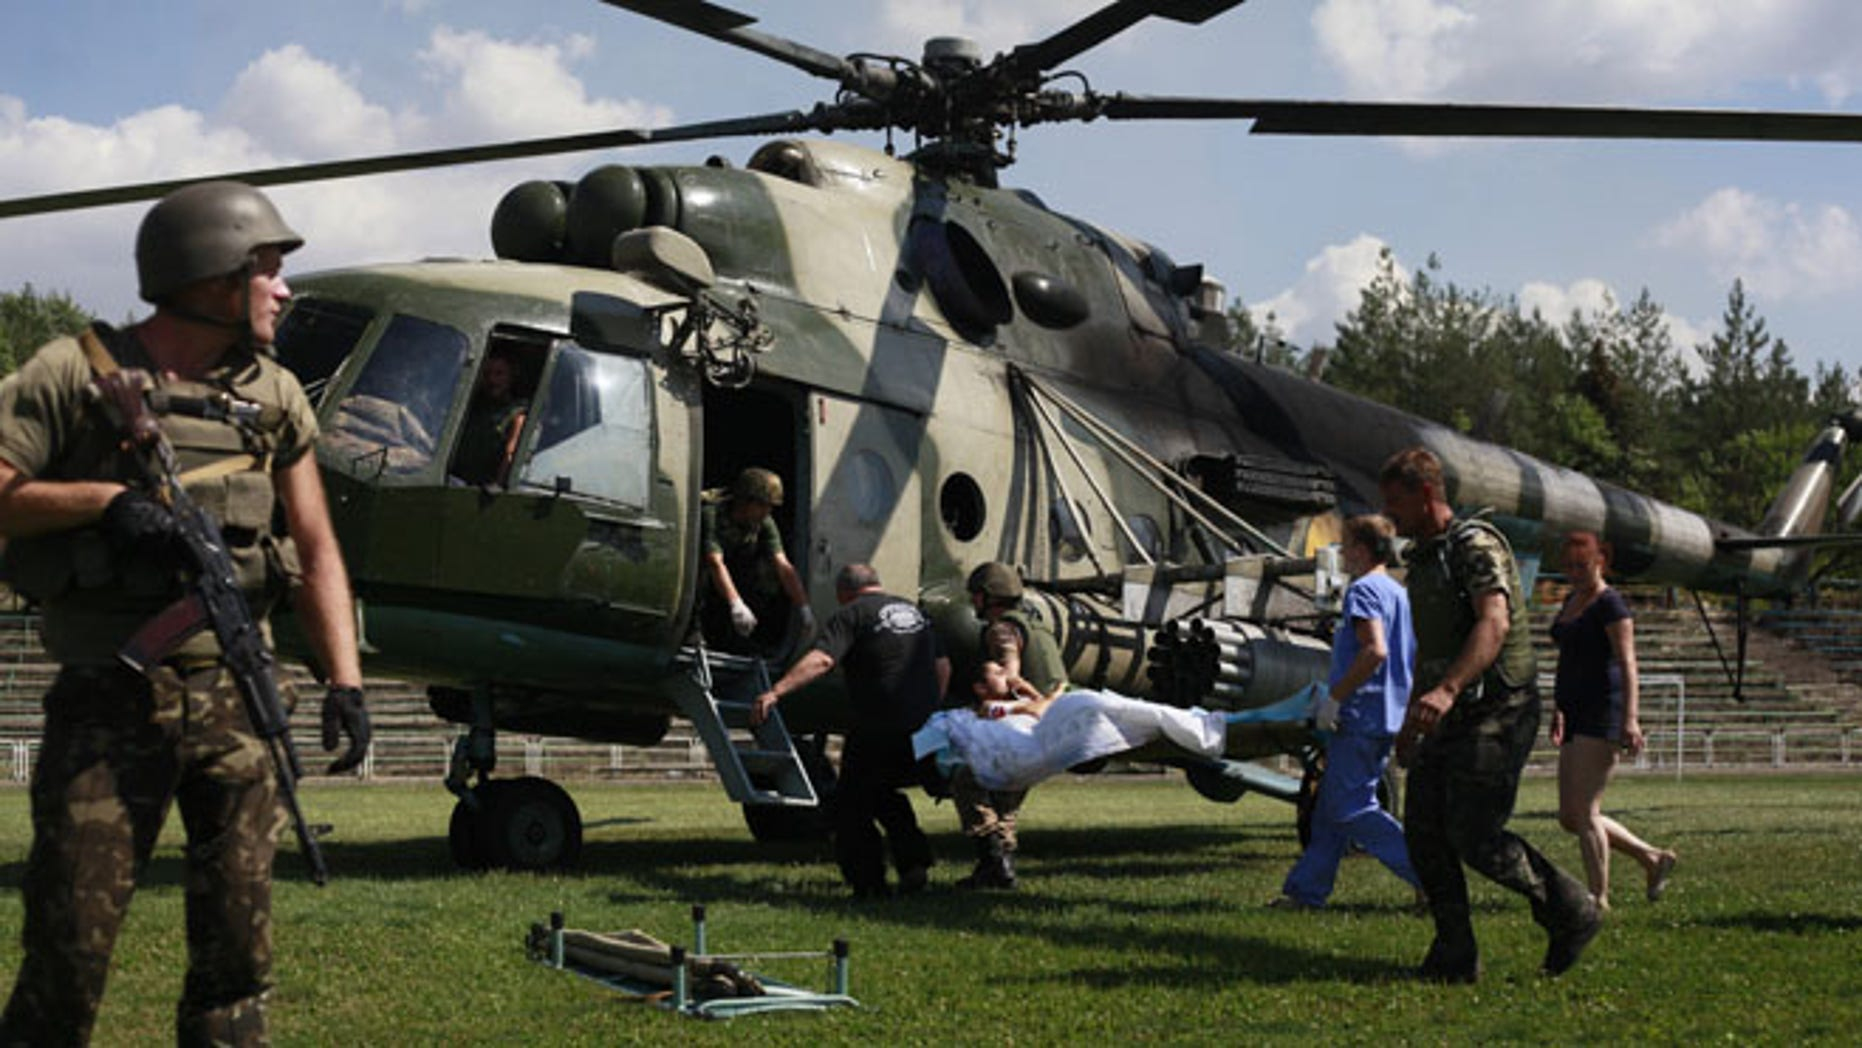 Ukrainian soldiers evacuate a wounded comrade close to Luhansk, eastern Ukraine, Thursday, Aug. 21, 2014.  The rebel stronghold 20 kilometers from the Russian border has been under siege for 19 days, lacking basic amenities like running water or electricity. (AP Photo/Petro Zadorozhnyy)